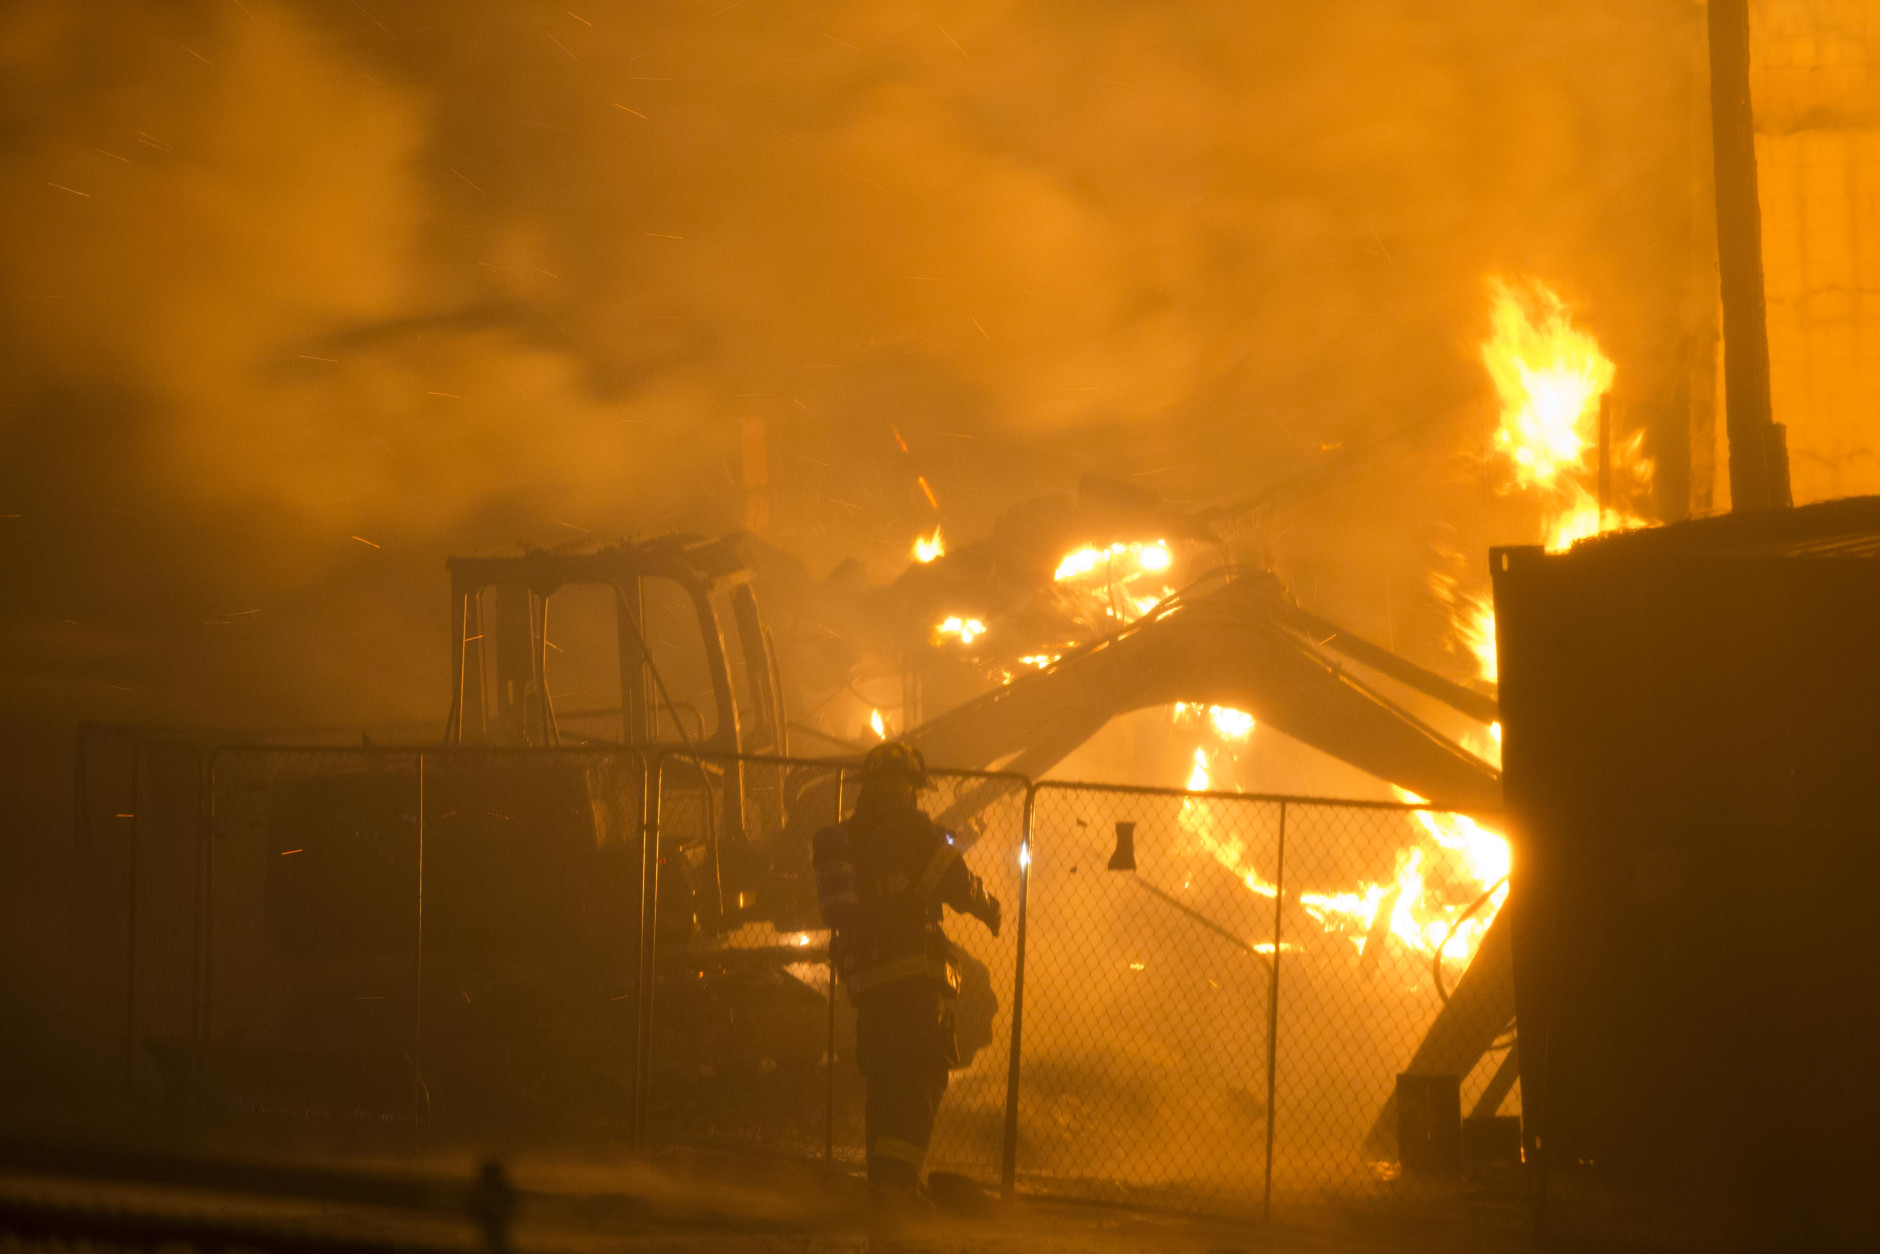 Firefighters battle a blaze, Monday, April 27, 2015, after rioters plunged part of Baltimore into chaos, torching a pharmacy, setting police cars ablaze and throwing bricks at officers. (AP Photo/Matt Rourke)